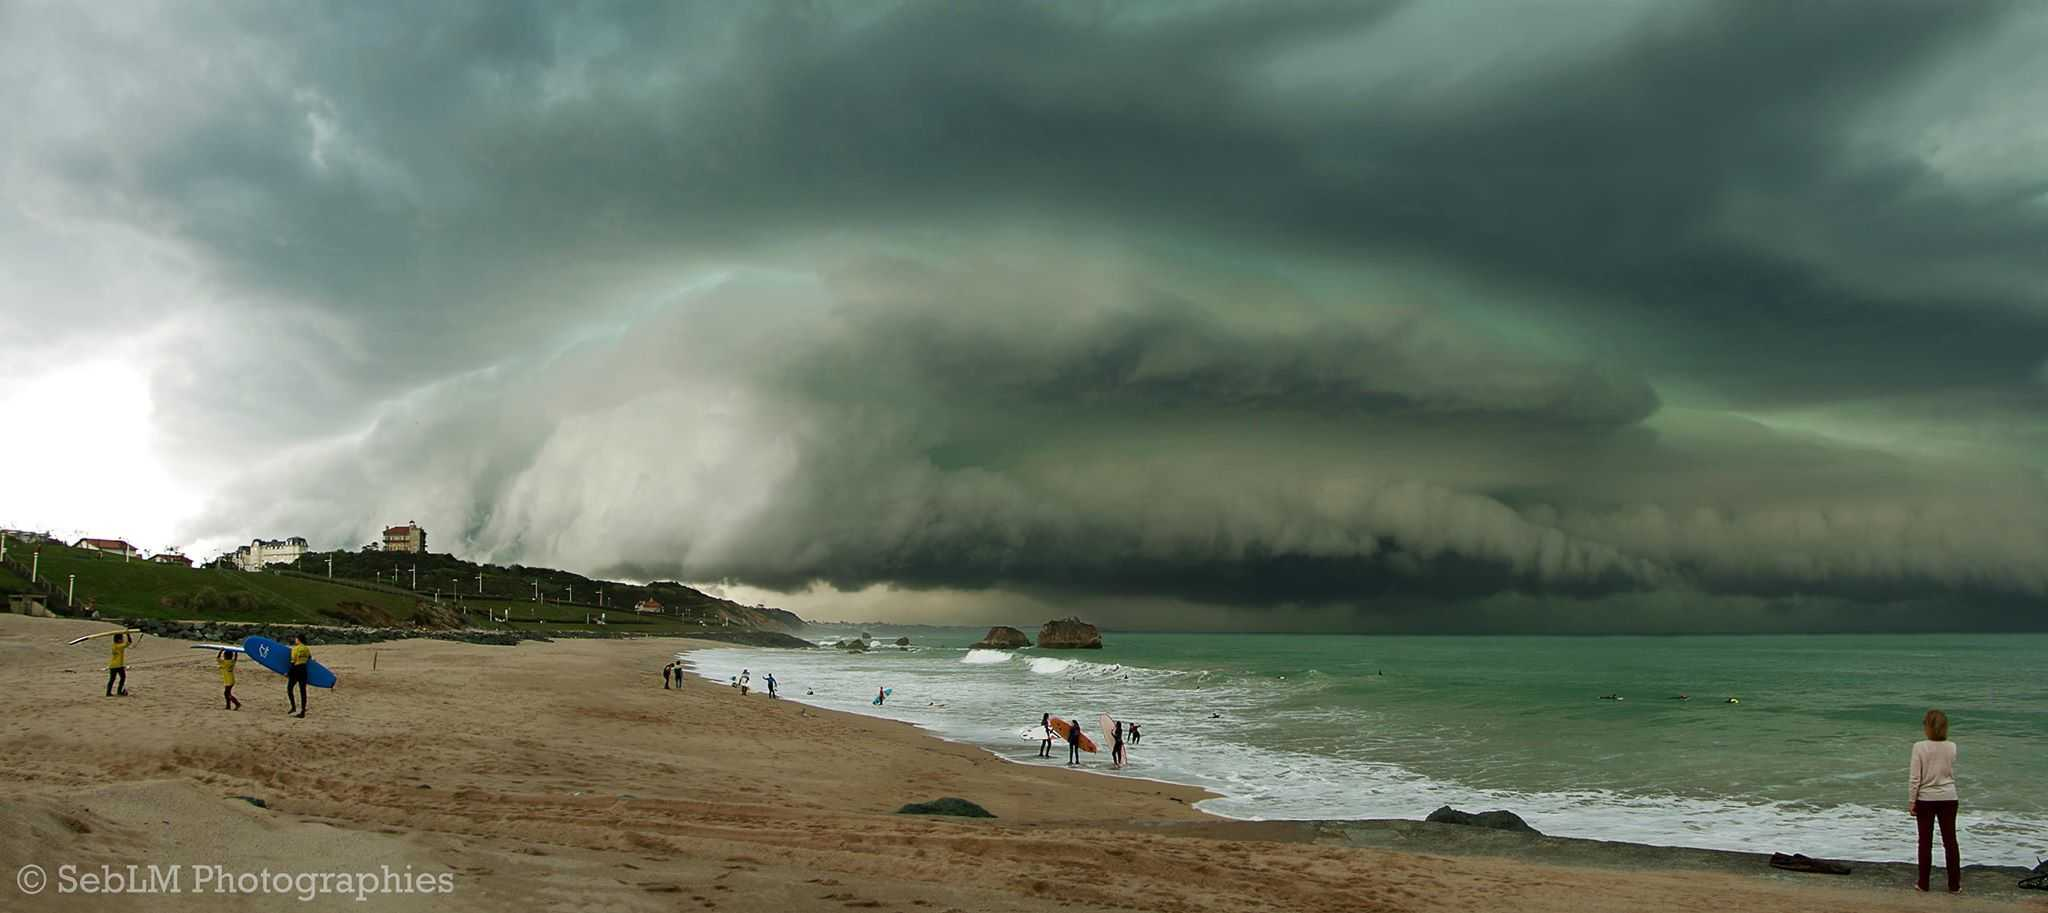 Epic shelfcloud structure rolls over Basque Country Coast yesterday. Very impressive accumulation of hail was observed below. 04.18.15, Biarritz, SW France